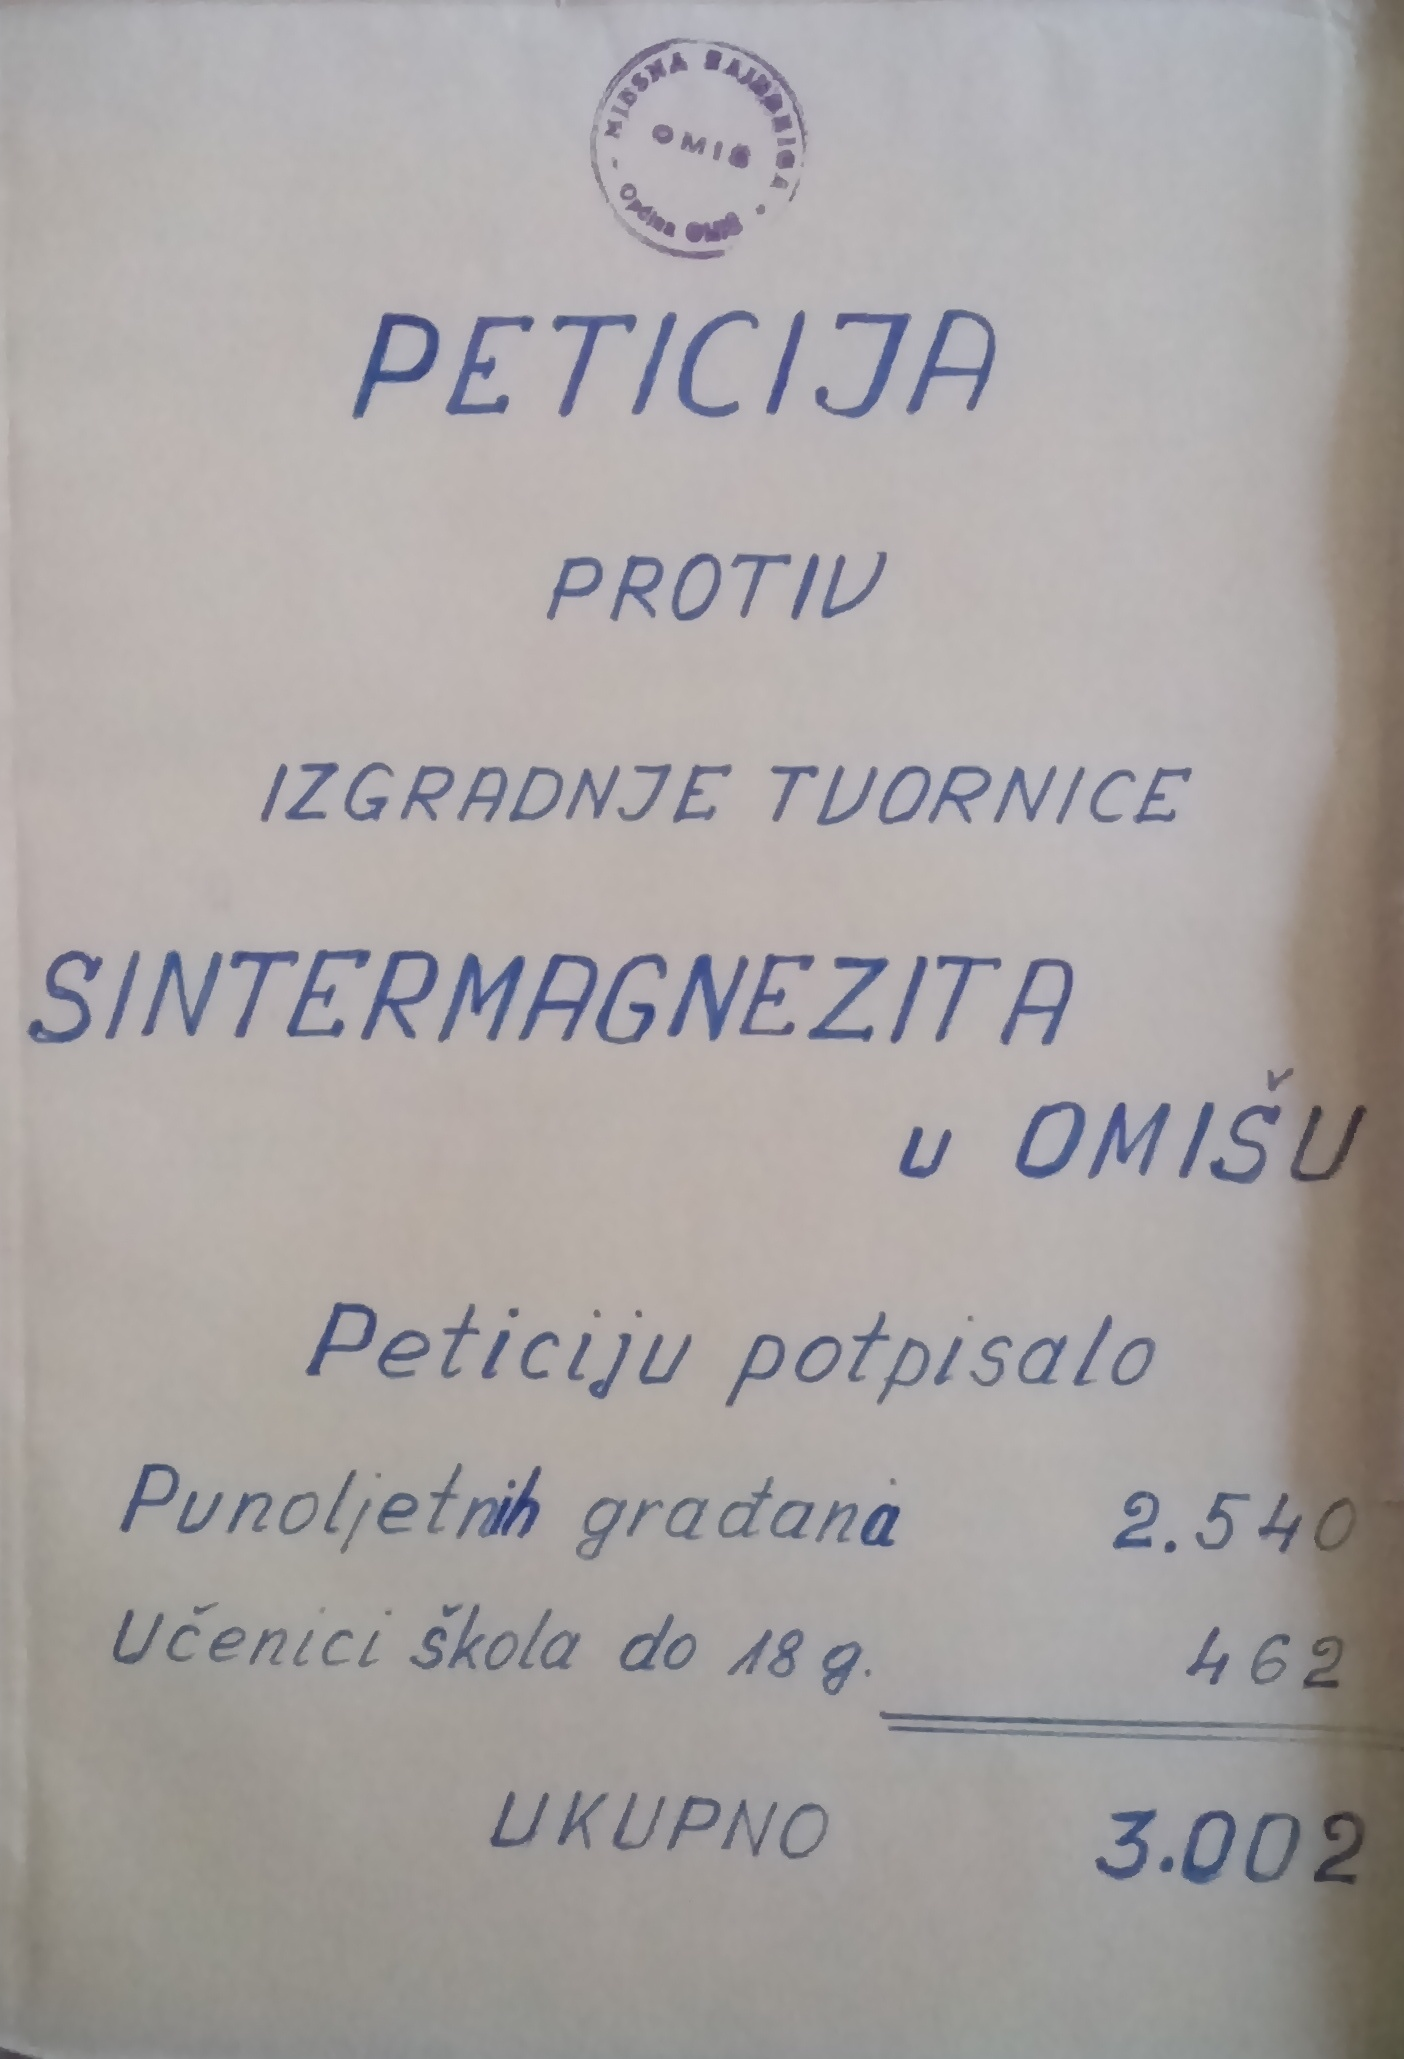 Original cover of the protest letter of 1979 opposing construction of a sintered magnesia factory in Omiš (2018-05-23).